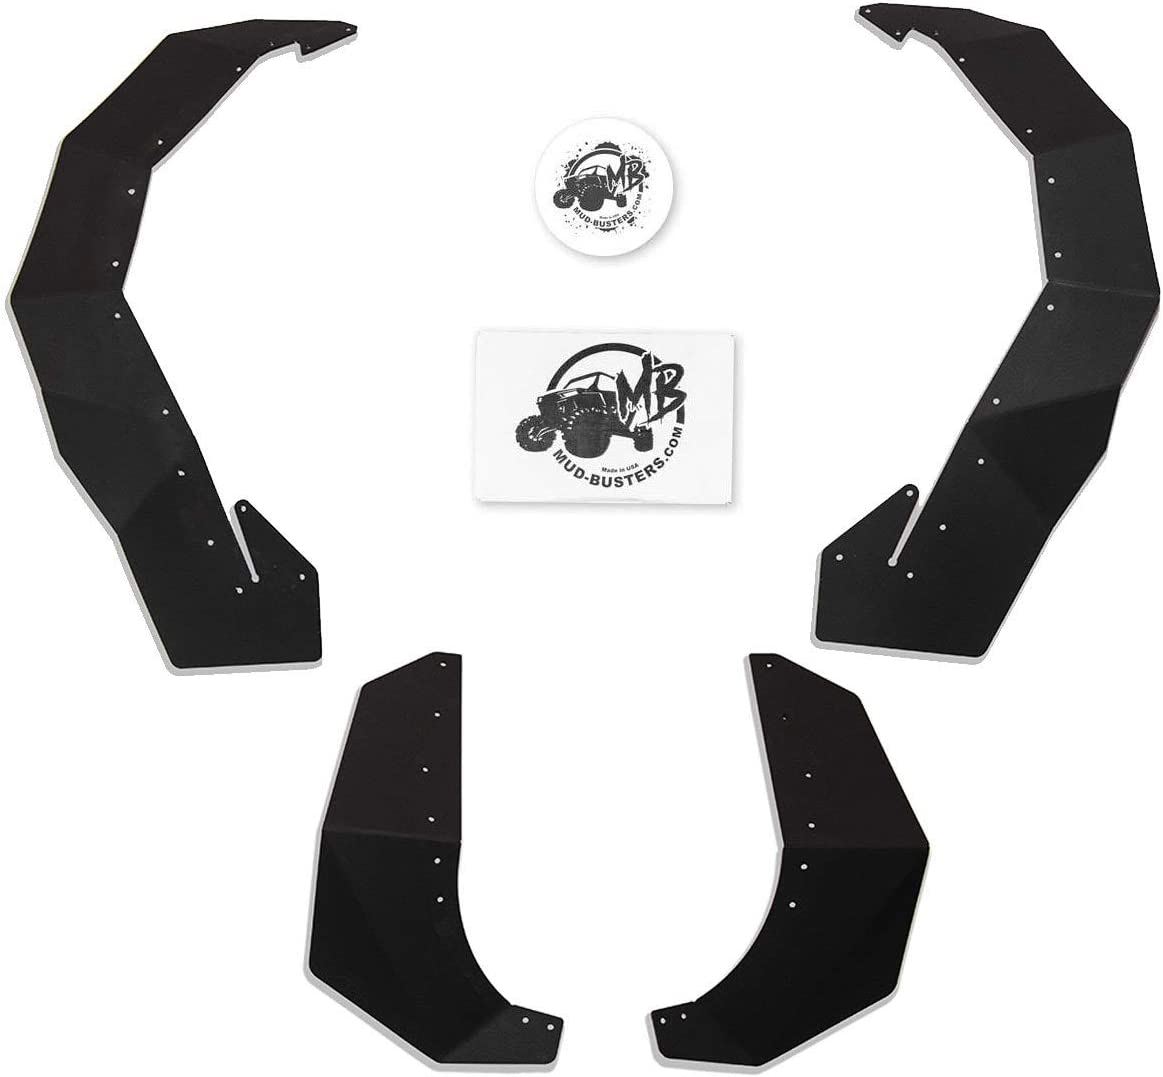 MudBusters Front and Rear 67% OFF of fixed price Fender Flares 1 for Polaris At the price of surprise General XP